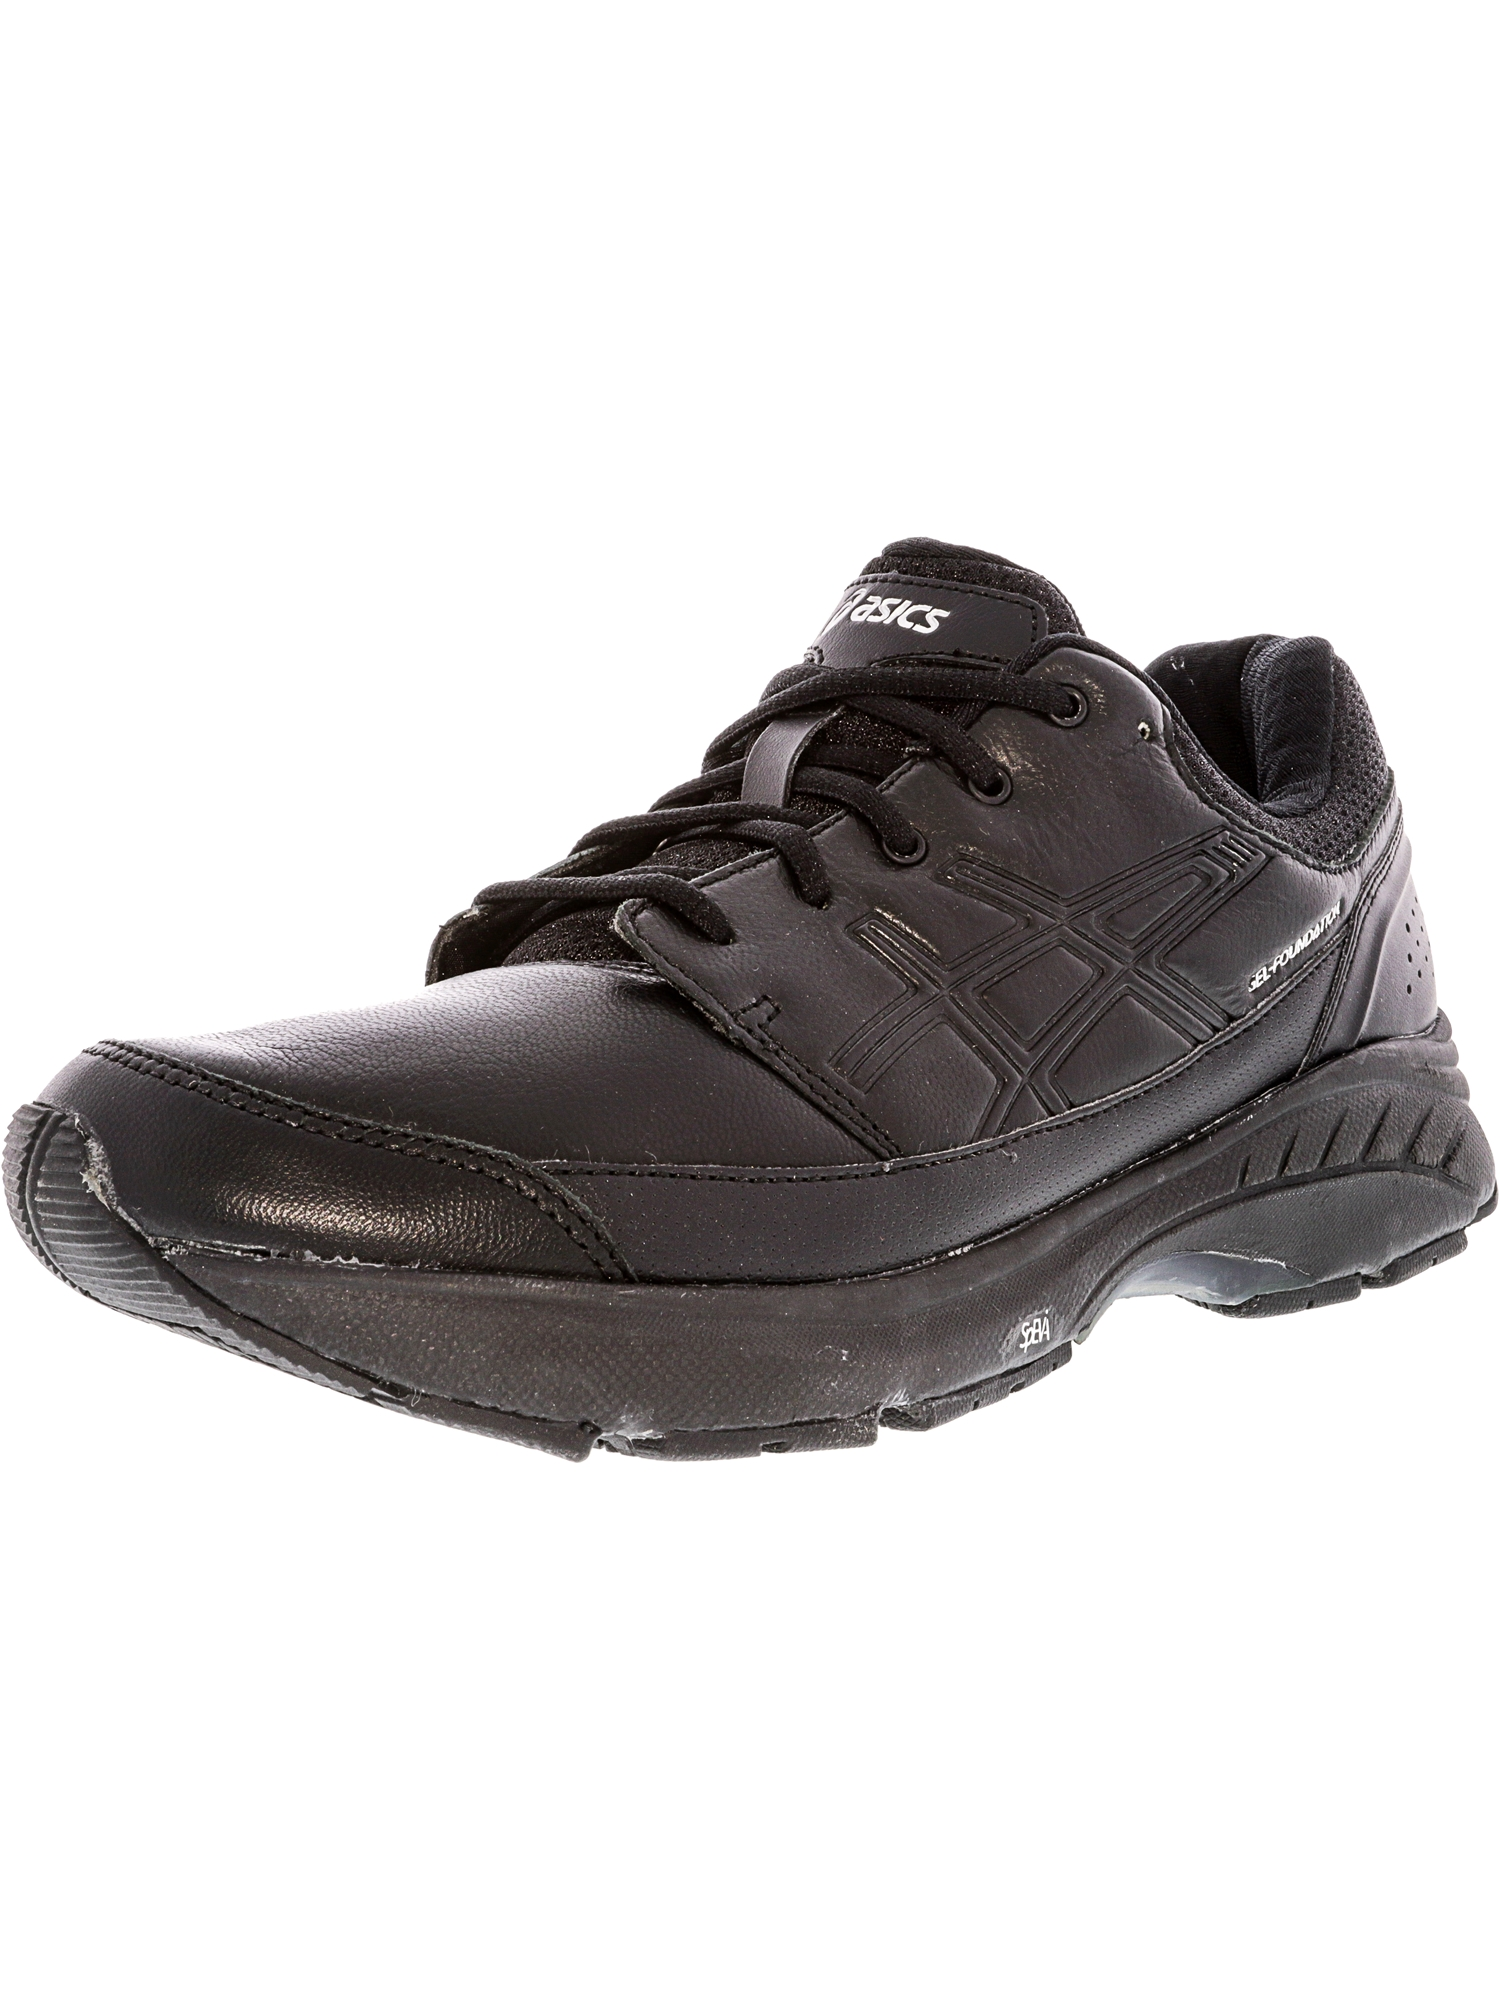 ASICS Asics Women's Gel Foundation Workplace Black Onyx Silver Ankle High Cross Trainer Shoe 6.5WW